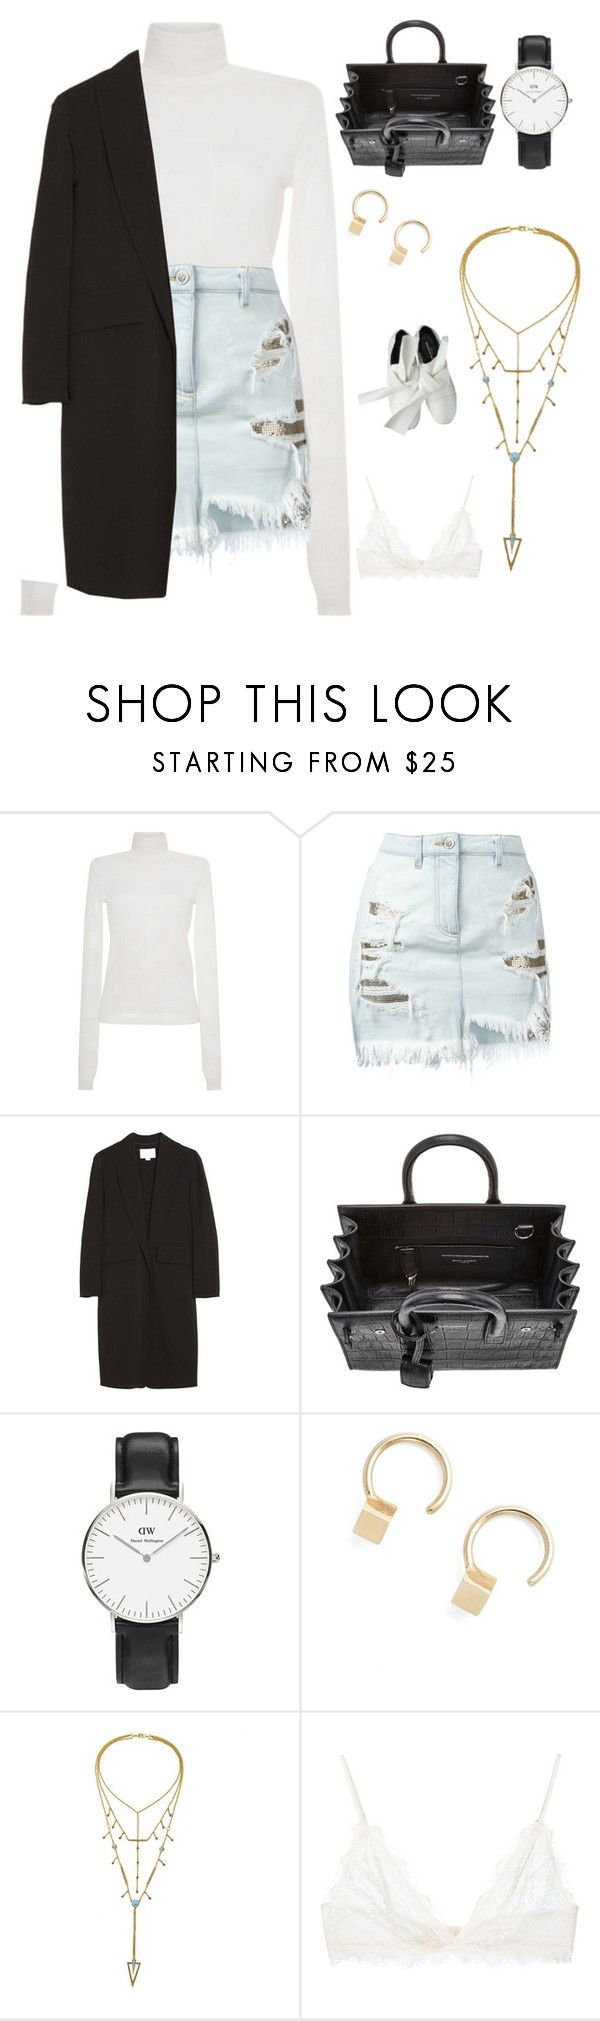 """Untitled #9161"" by tatyanaoliveiratatiana ❤ liked on Polyvore featuring MSGM, Versus, Alexander Wang, Yves Saint Laurent, Daniel Wellington, Julien David, Anine Bing, Comme des Garçons, men's fashion and menswear"